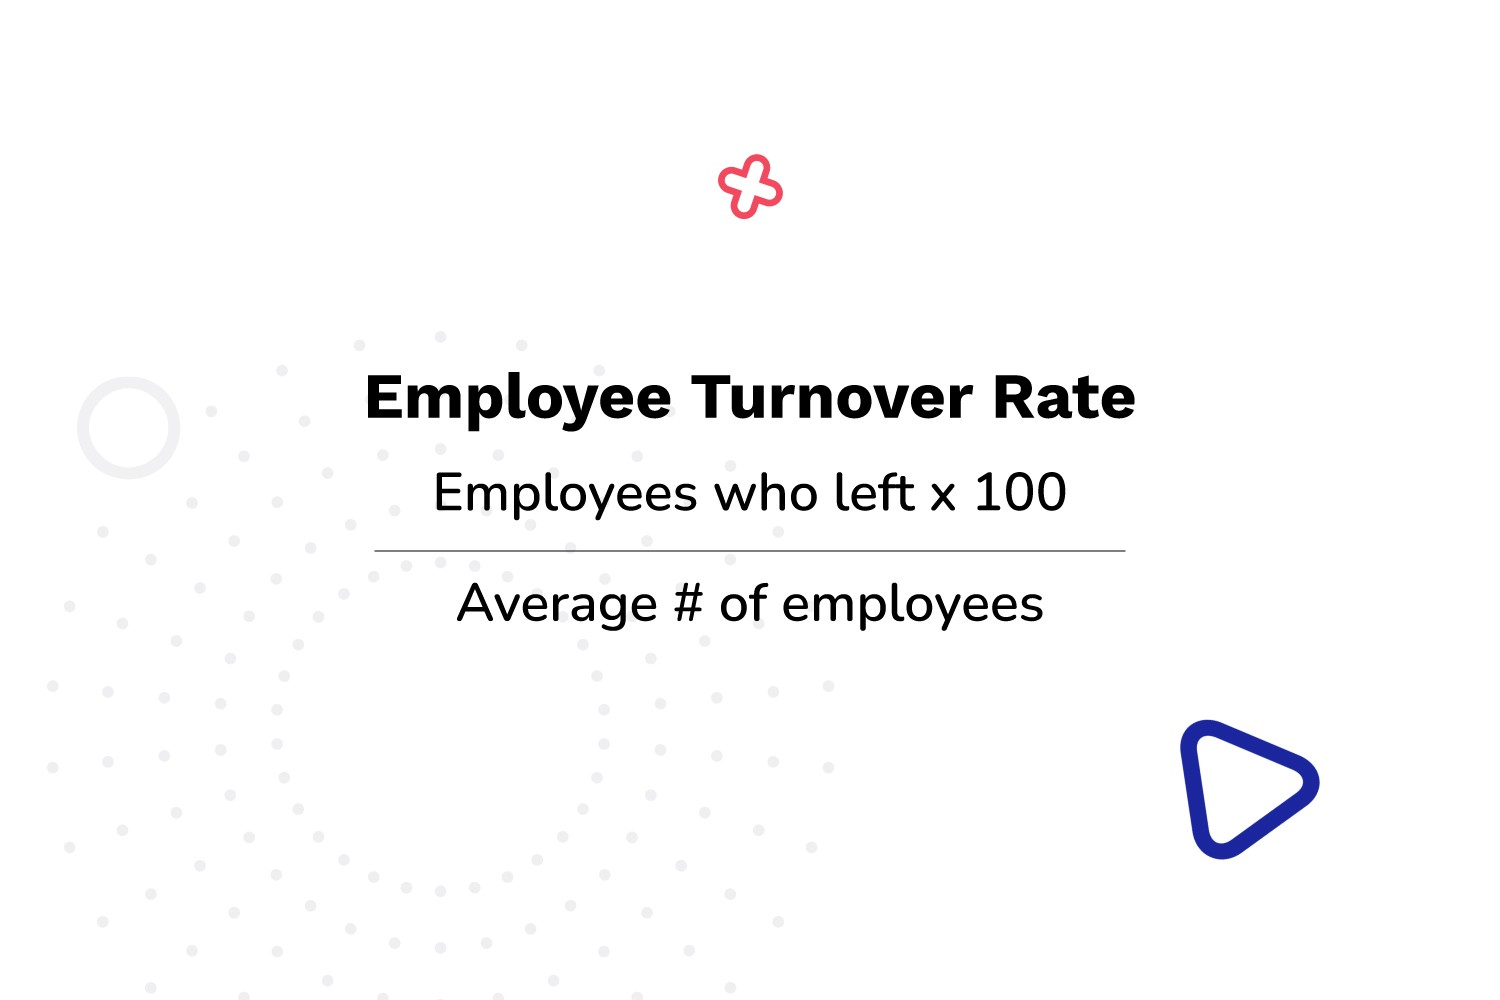 employee turnover rate equals employees who left times 100 divided by average number of employees